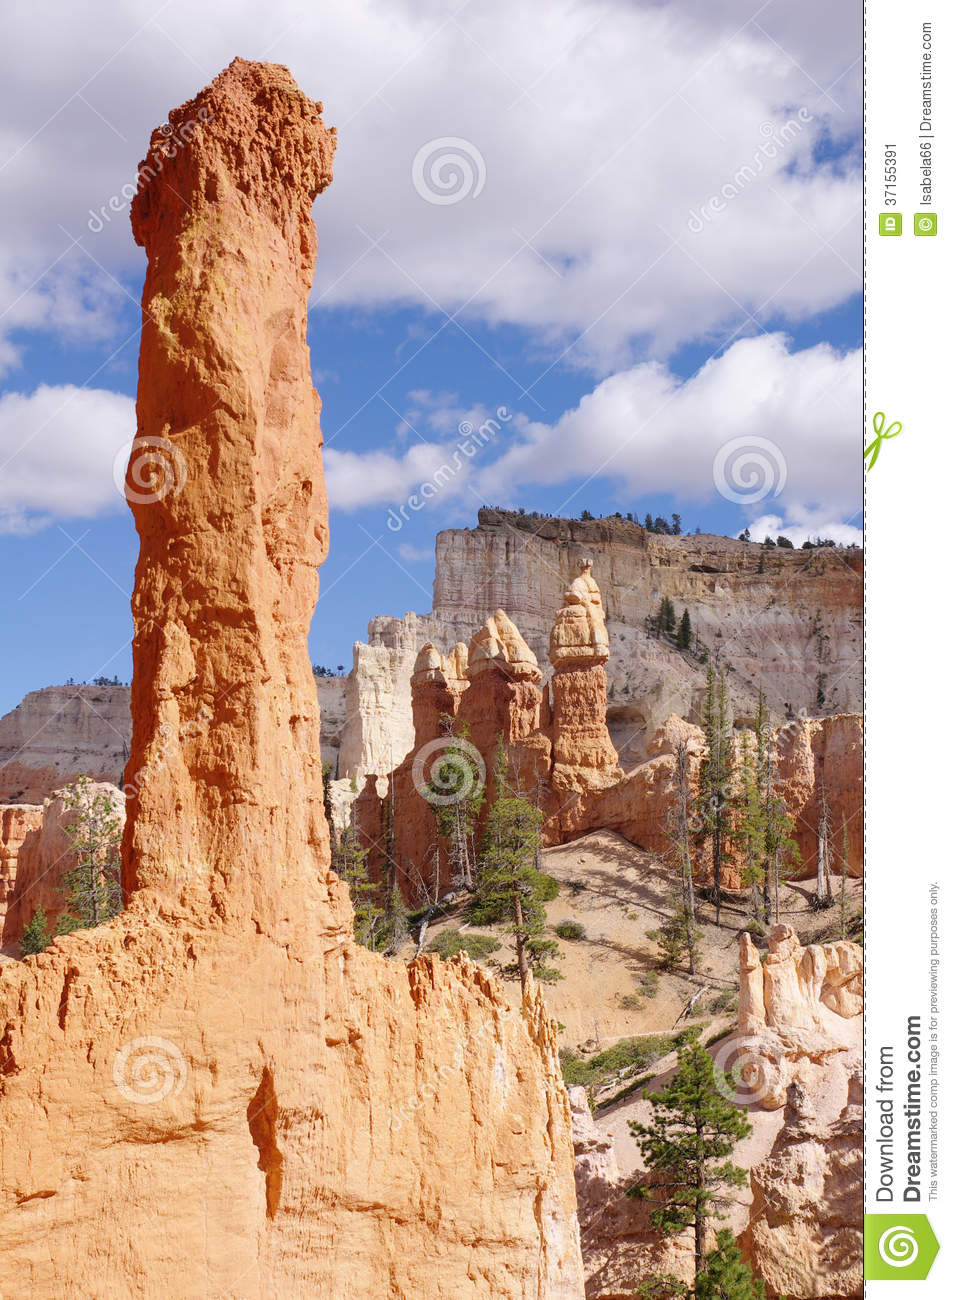 Bryce Canyon National Park clipart #7, Download drawings